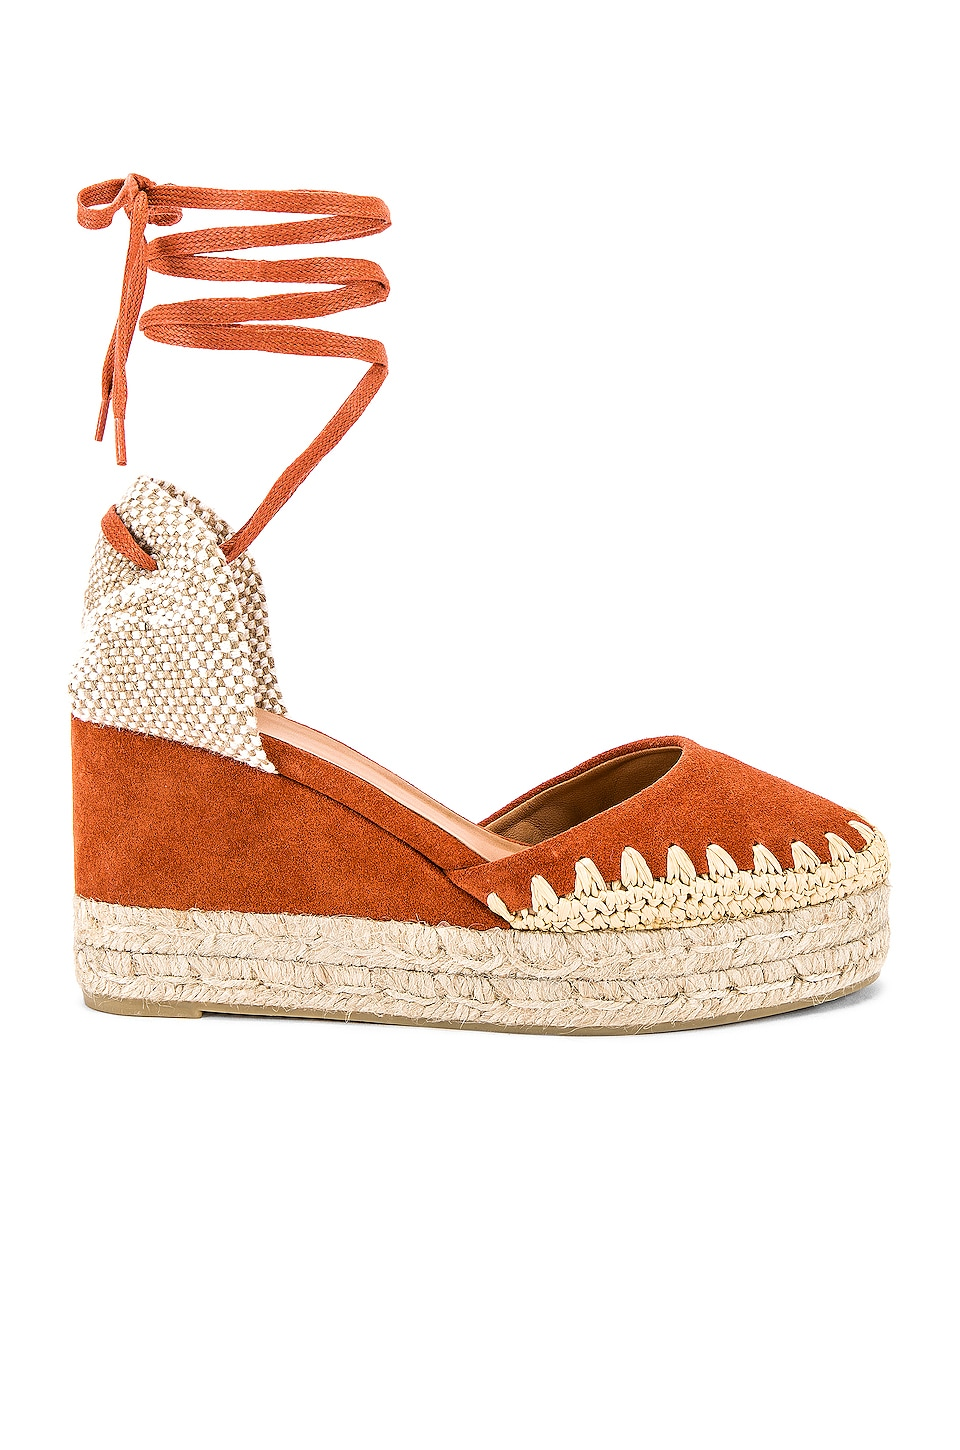 Castaner Cavan Wedge in Terracotta